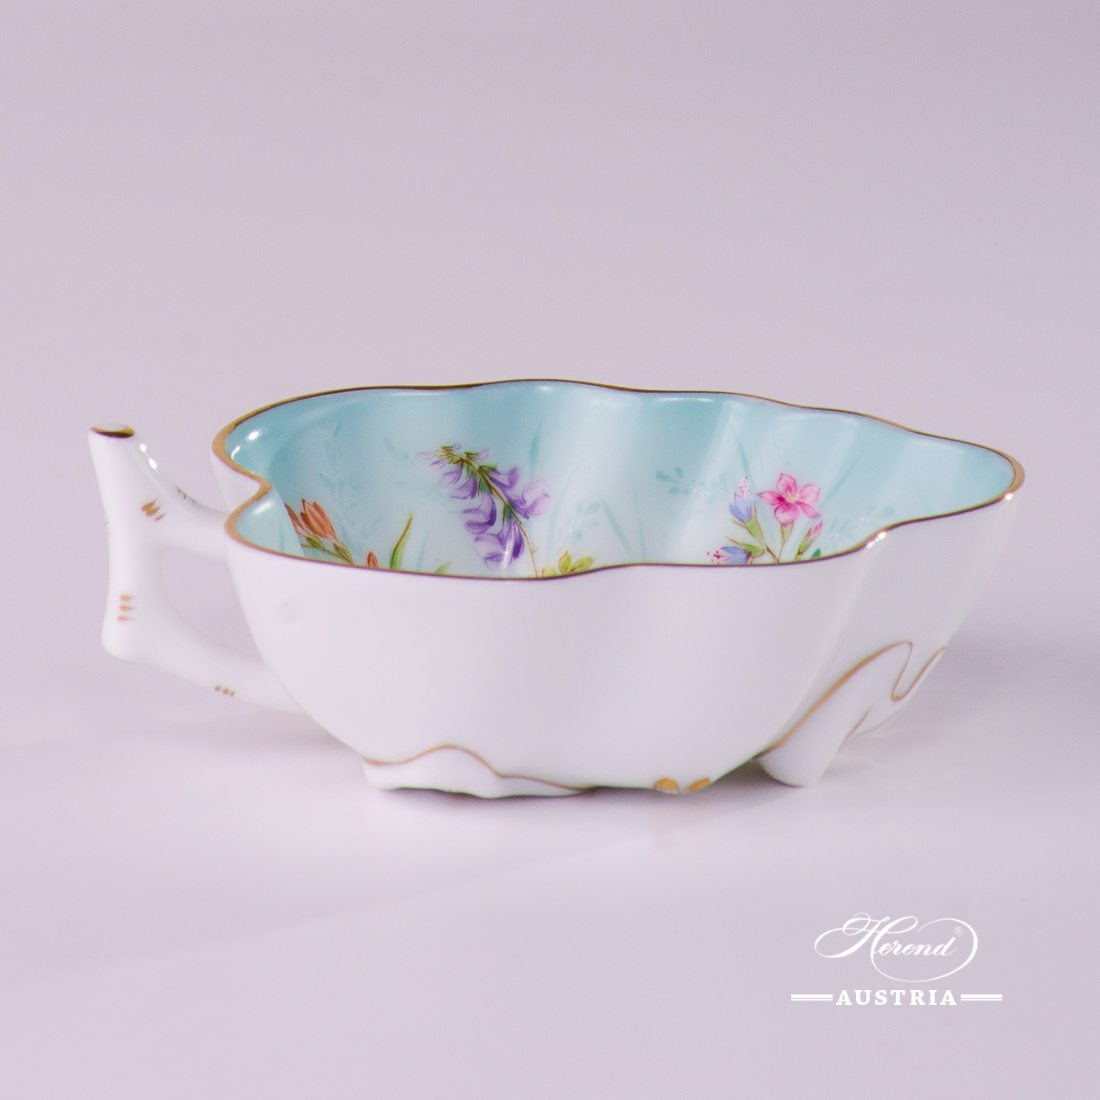 Four Seasons Sugar Bowl - 2492-0-00 QS - Herend Porcelain